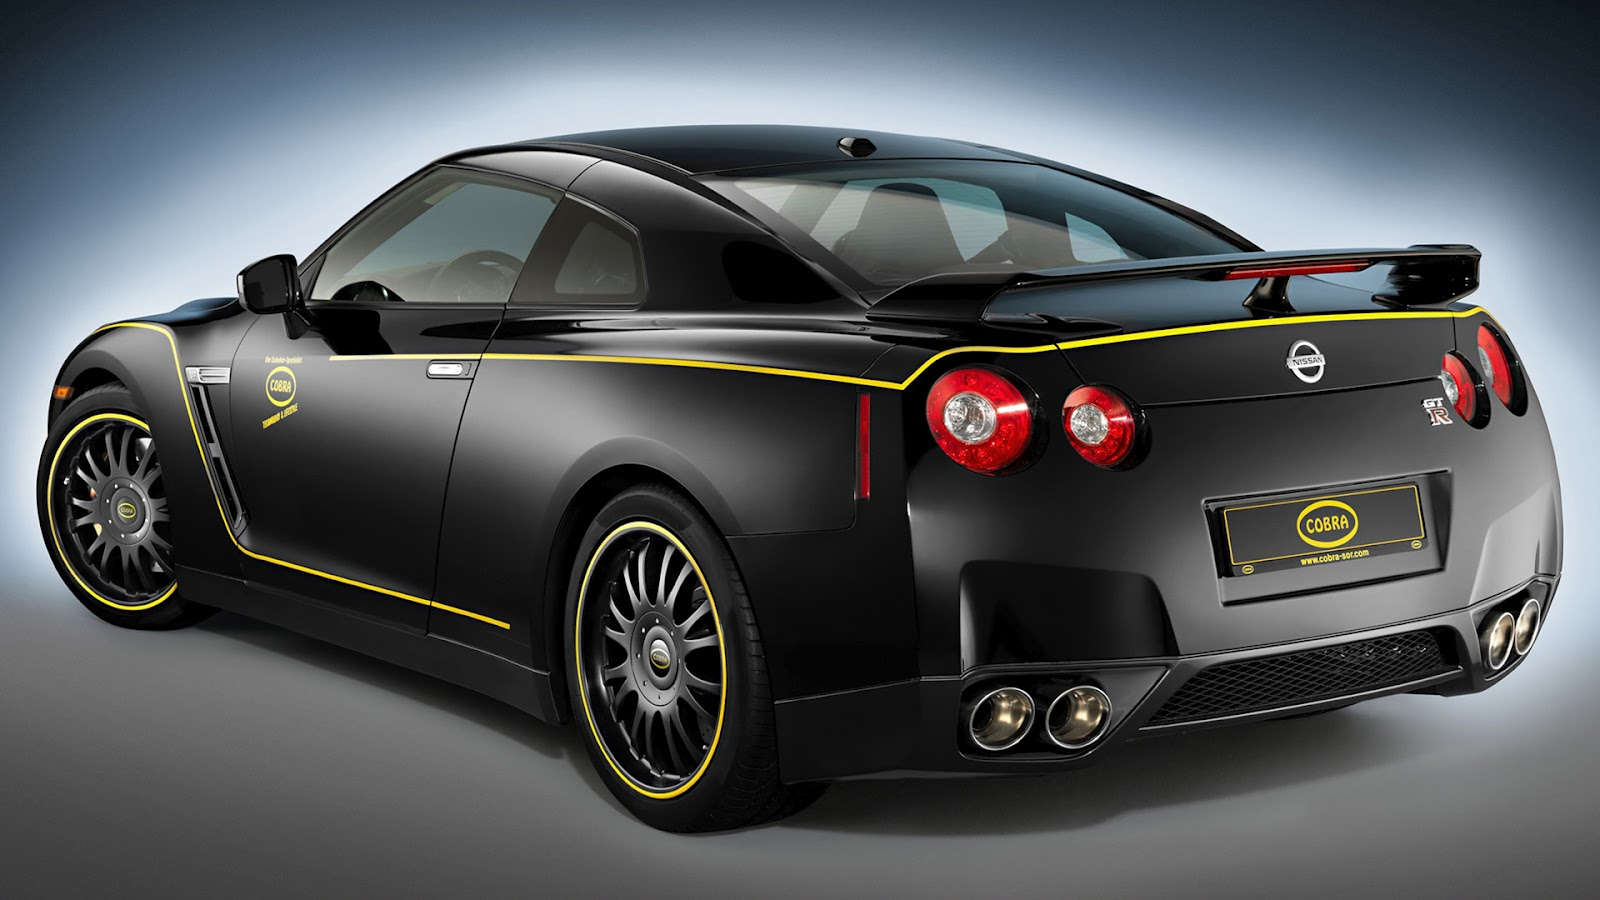 Cool Nissan Gtr Wallpaper Wallpapers